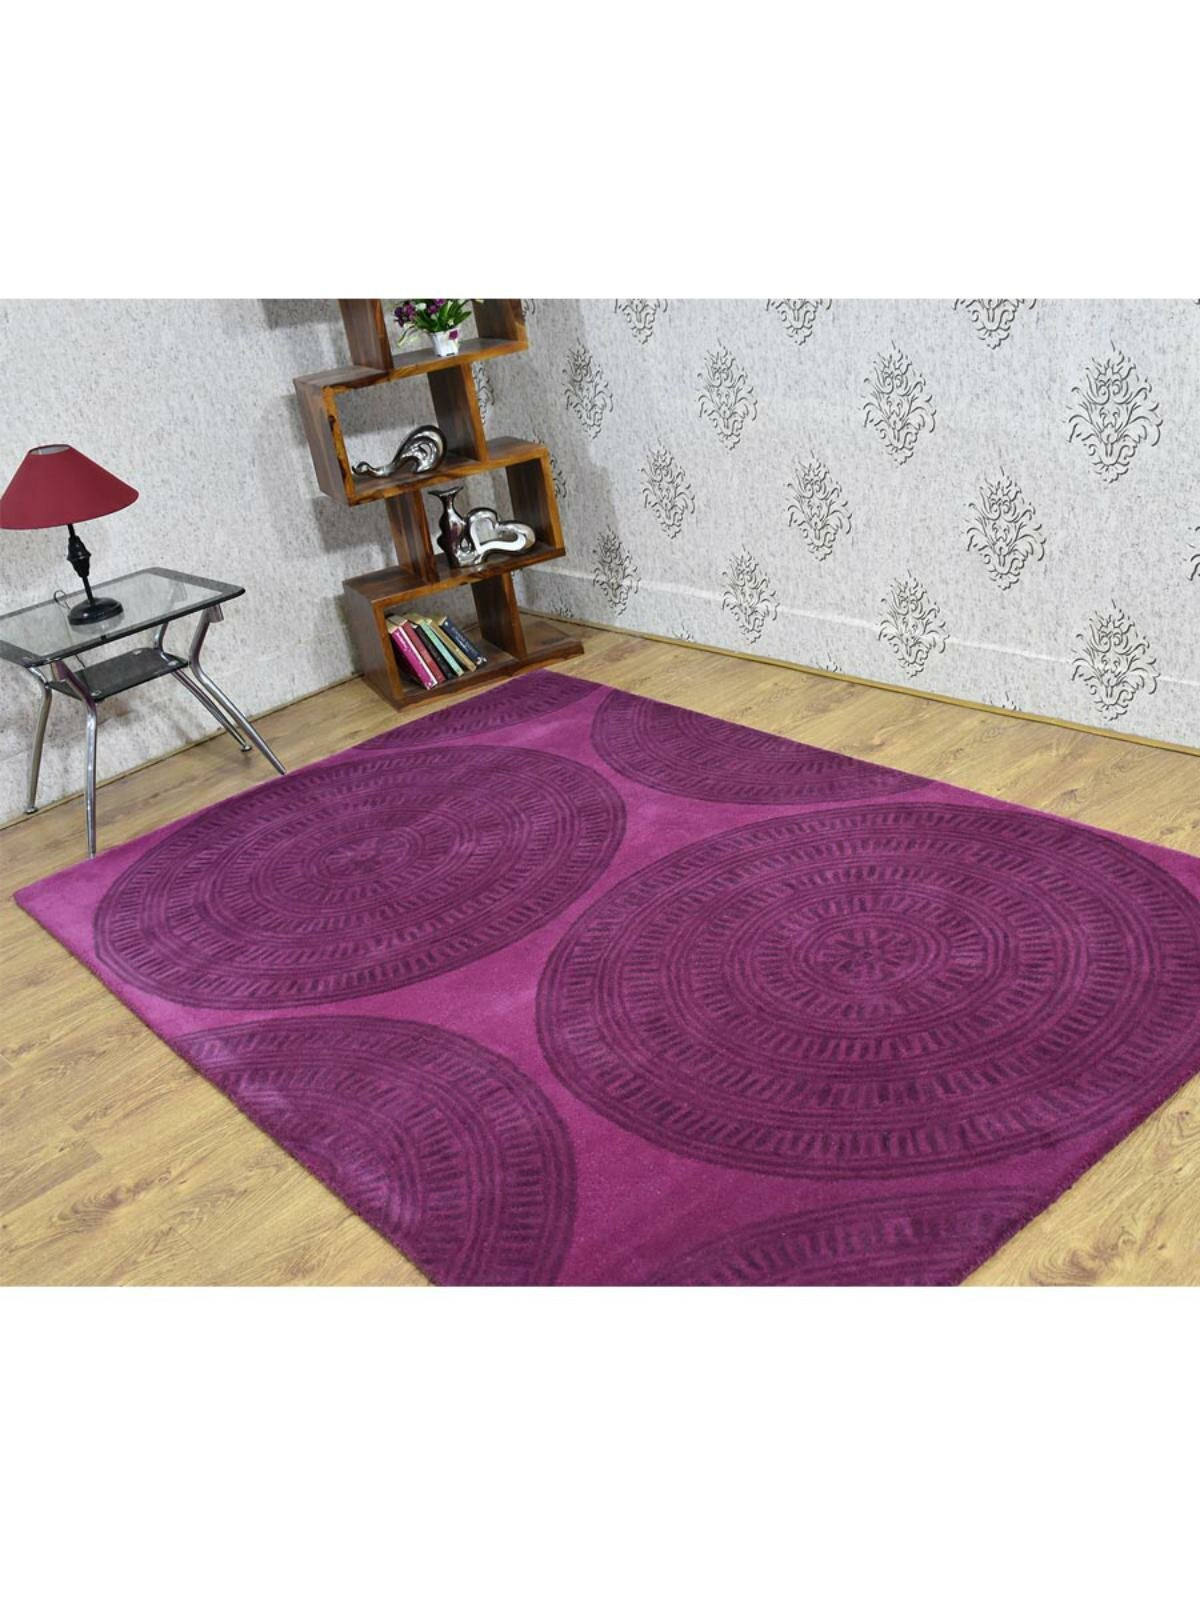 World Menagerie Rugsotic Carpets Hand Tufted Wool 5 X 7 6 Rectangle Area Rug Contemporary Violet Grey K03140 Wayfair Ca